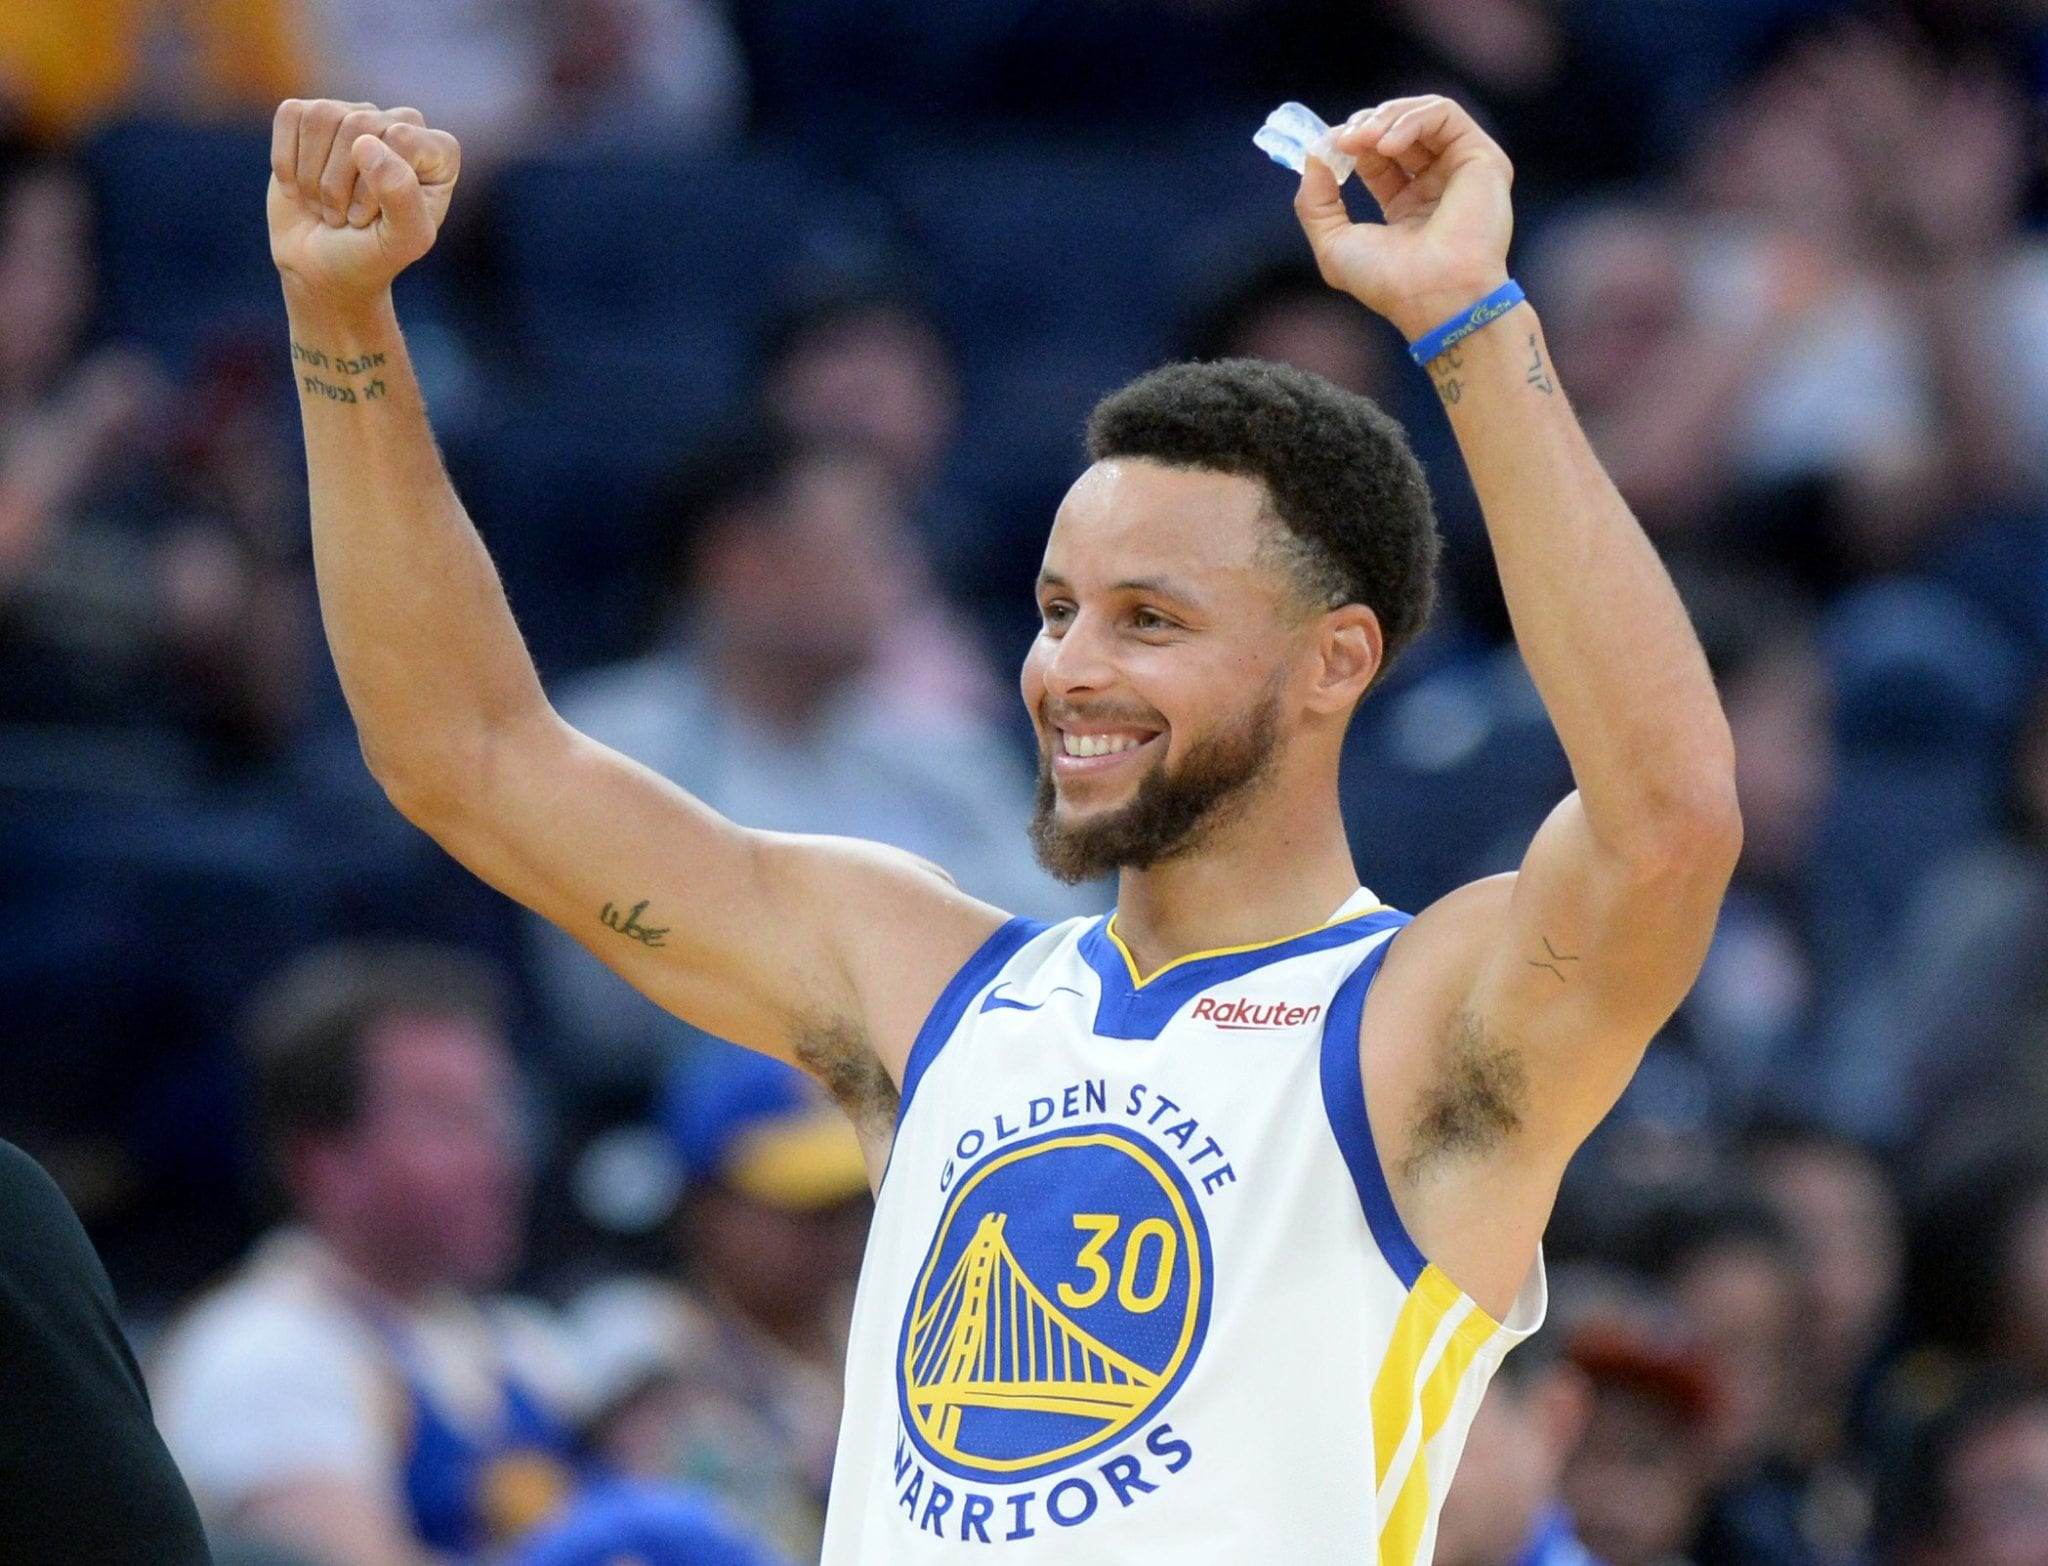 Golden State Warriors' Stephen Curry (30) celebrates the Warriors winning a challenge of a referees call in the second period of their NBA basketball game against the Minnesota Timberwolves at the Chase Center in San Francisco, Calif., on Thursday, Oct. 10, 2019. (Doug Duran/Bay Area News Group)